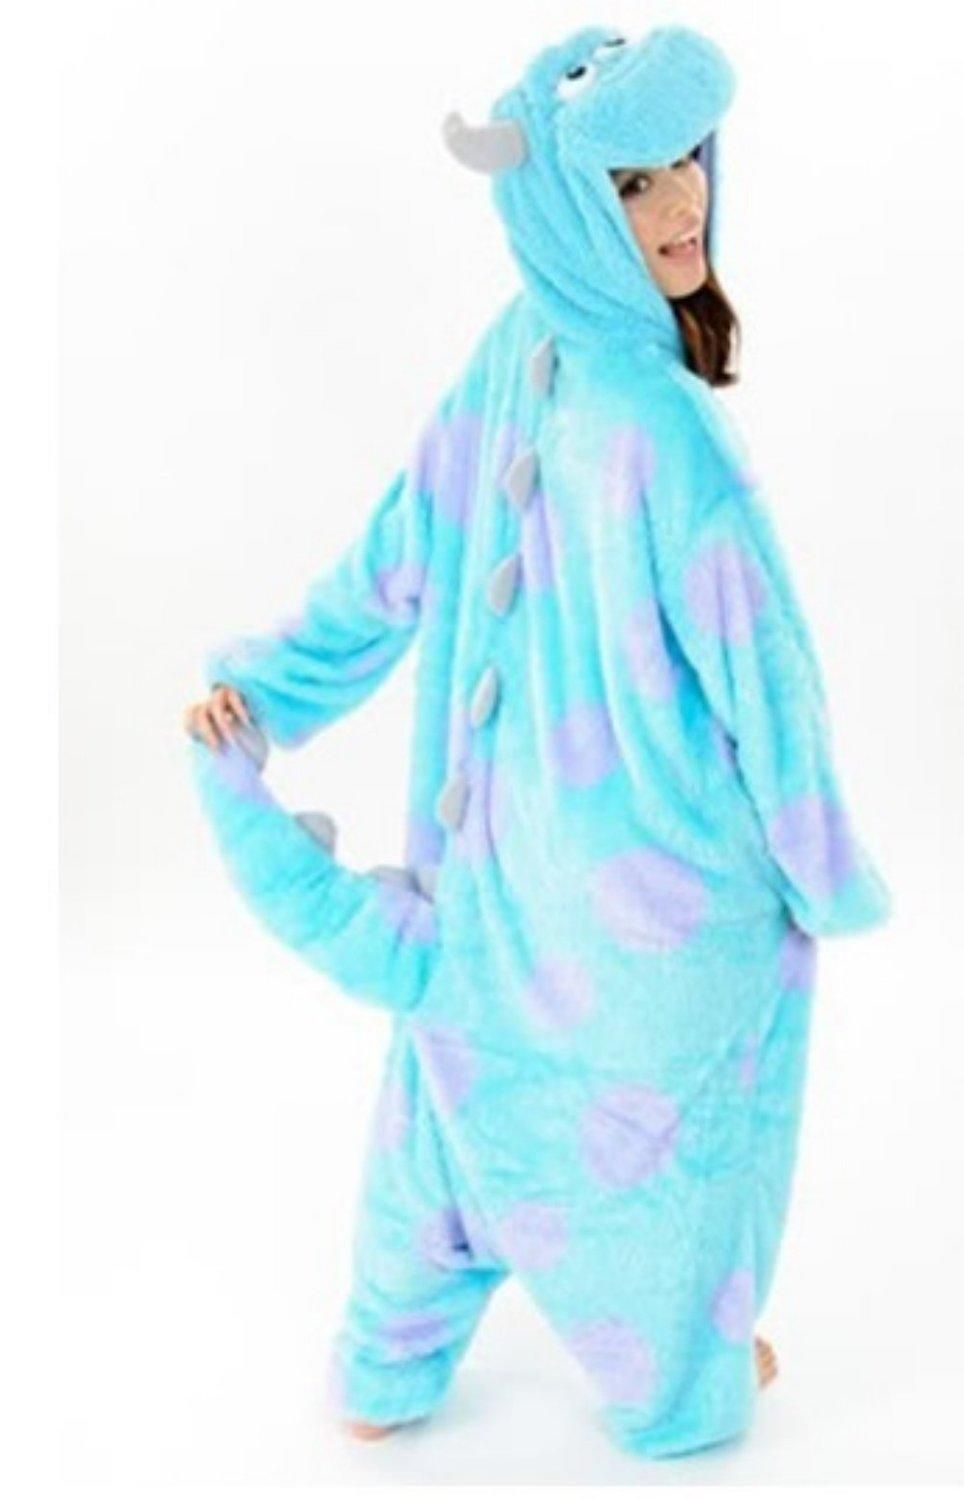 meilleure sélection 0b804 b6316 Adult Animal Onesuit Monster'S Sully Cosplay Costume Pajamas ...